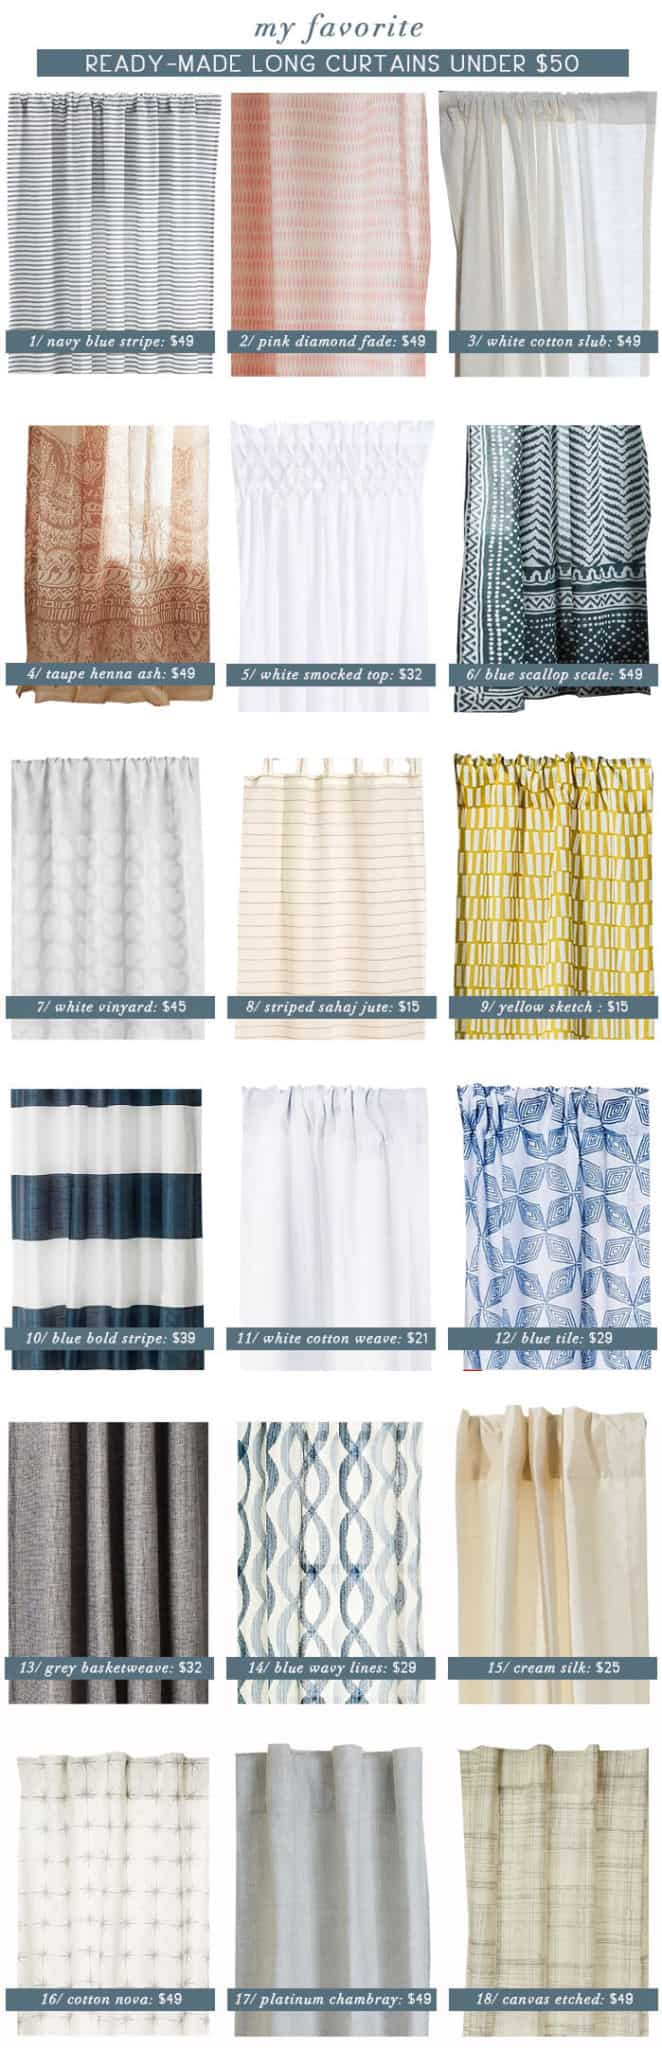 Emily Henderson_Best Curtain Panels Under 50_Roundup